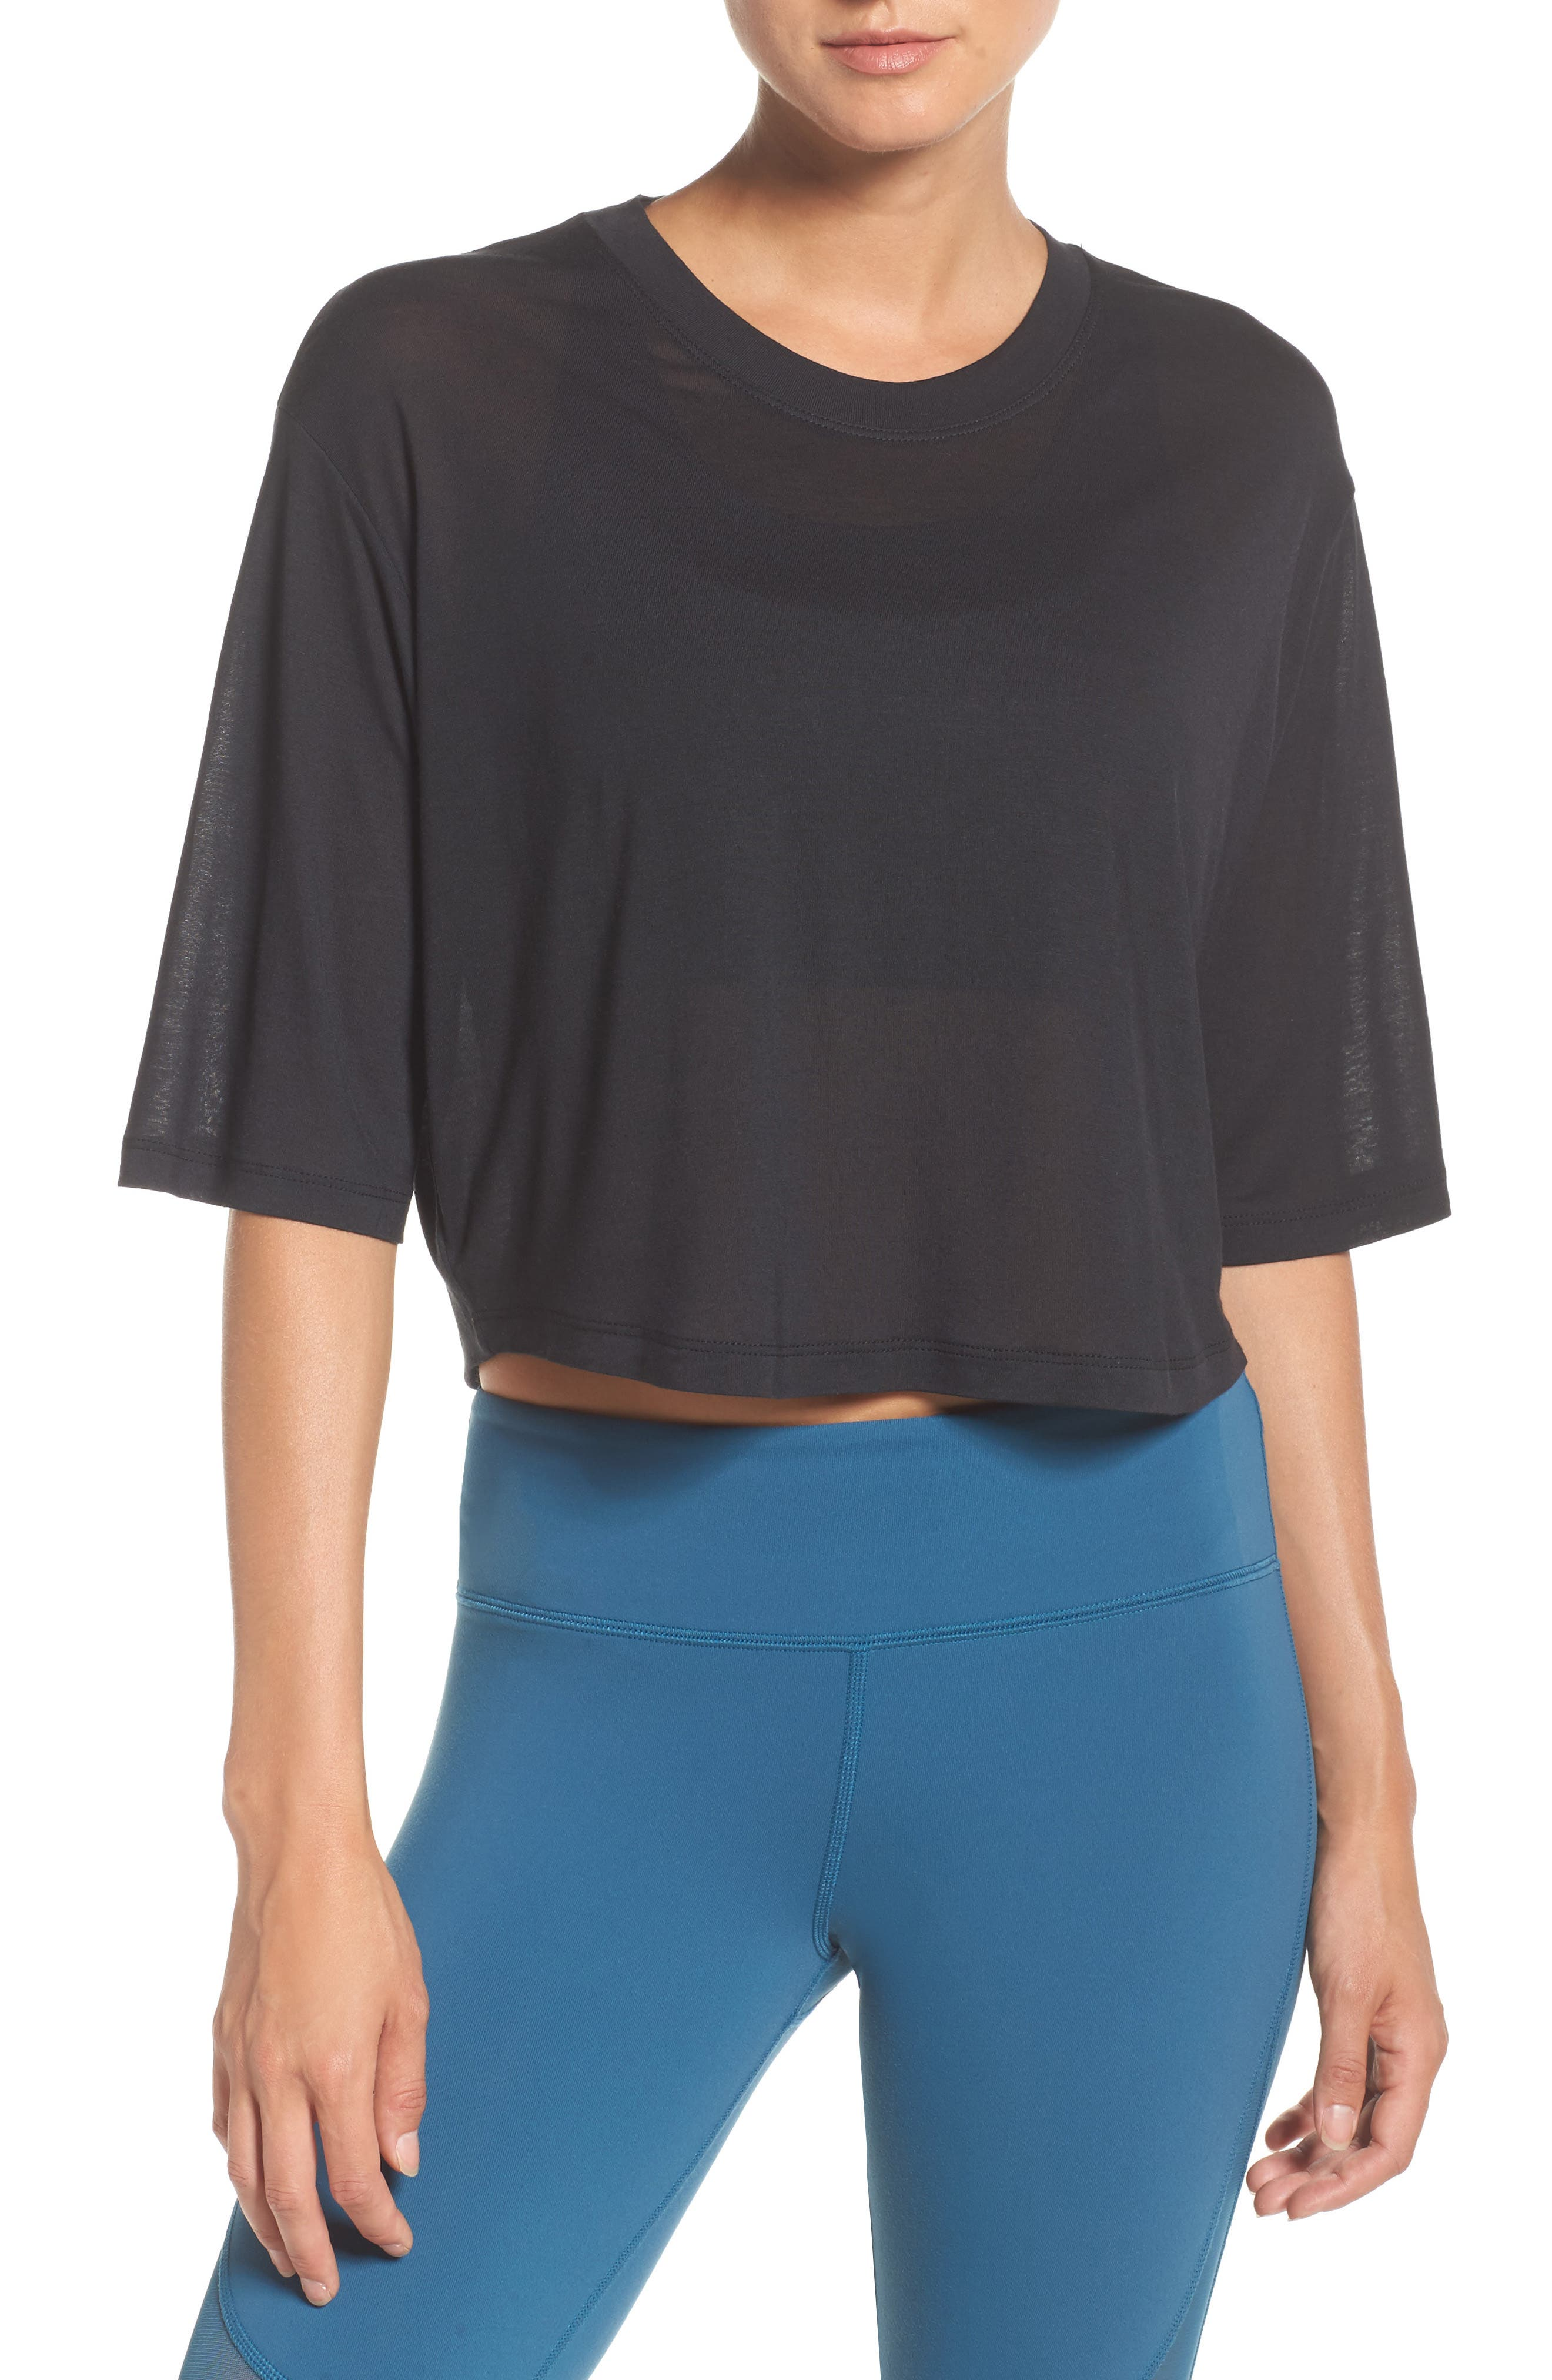 Verve Crop Top,                             Main thumbnail 1, color,                             001